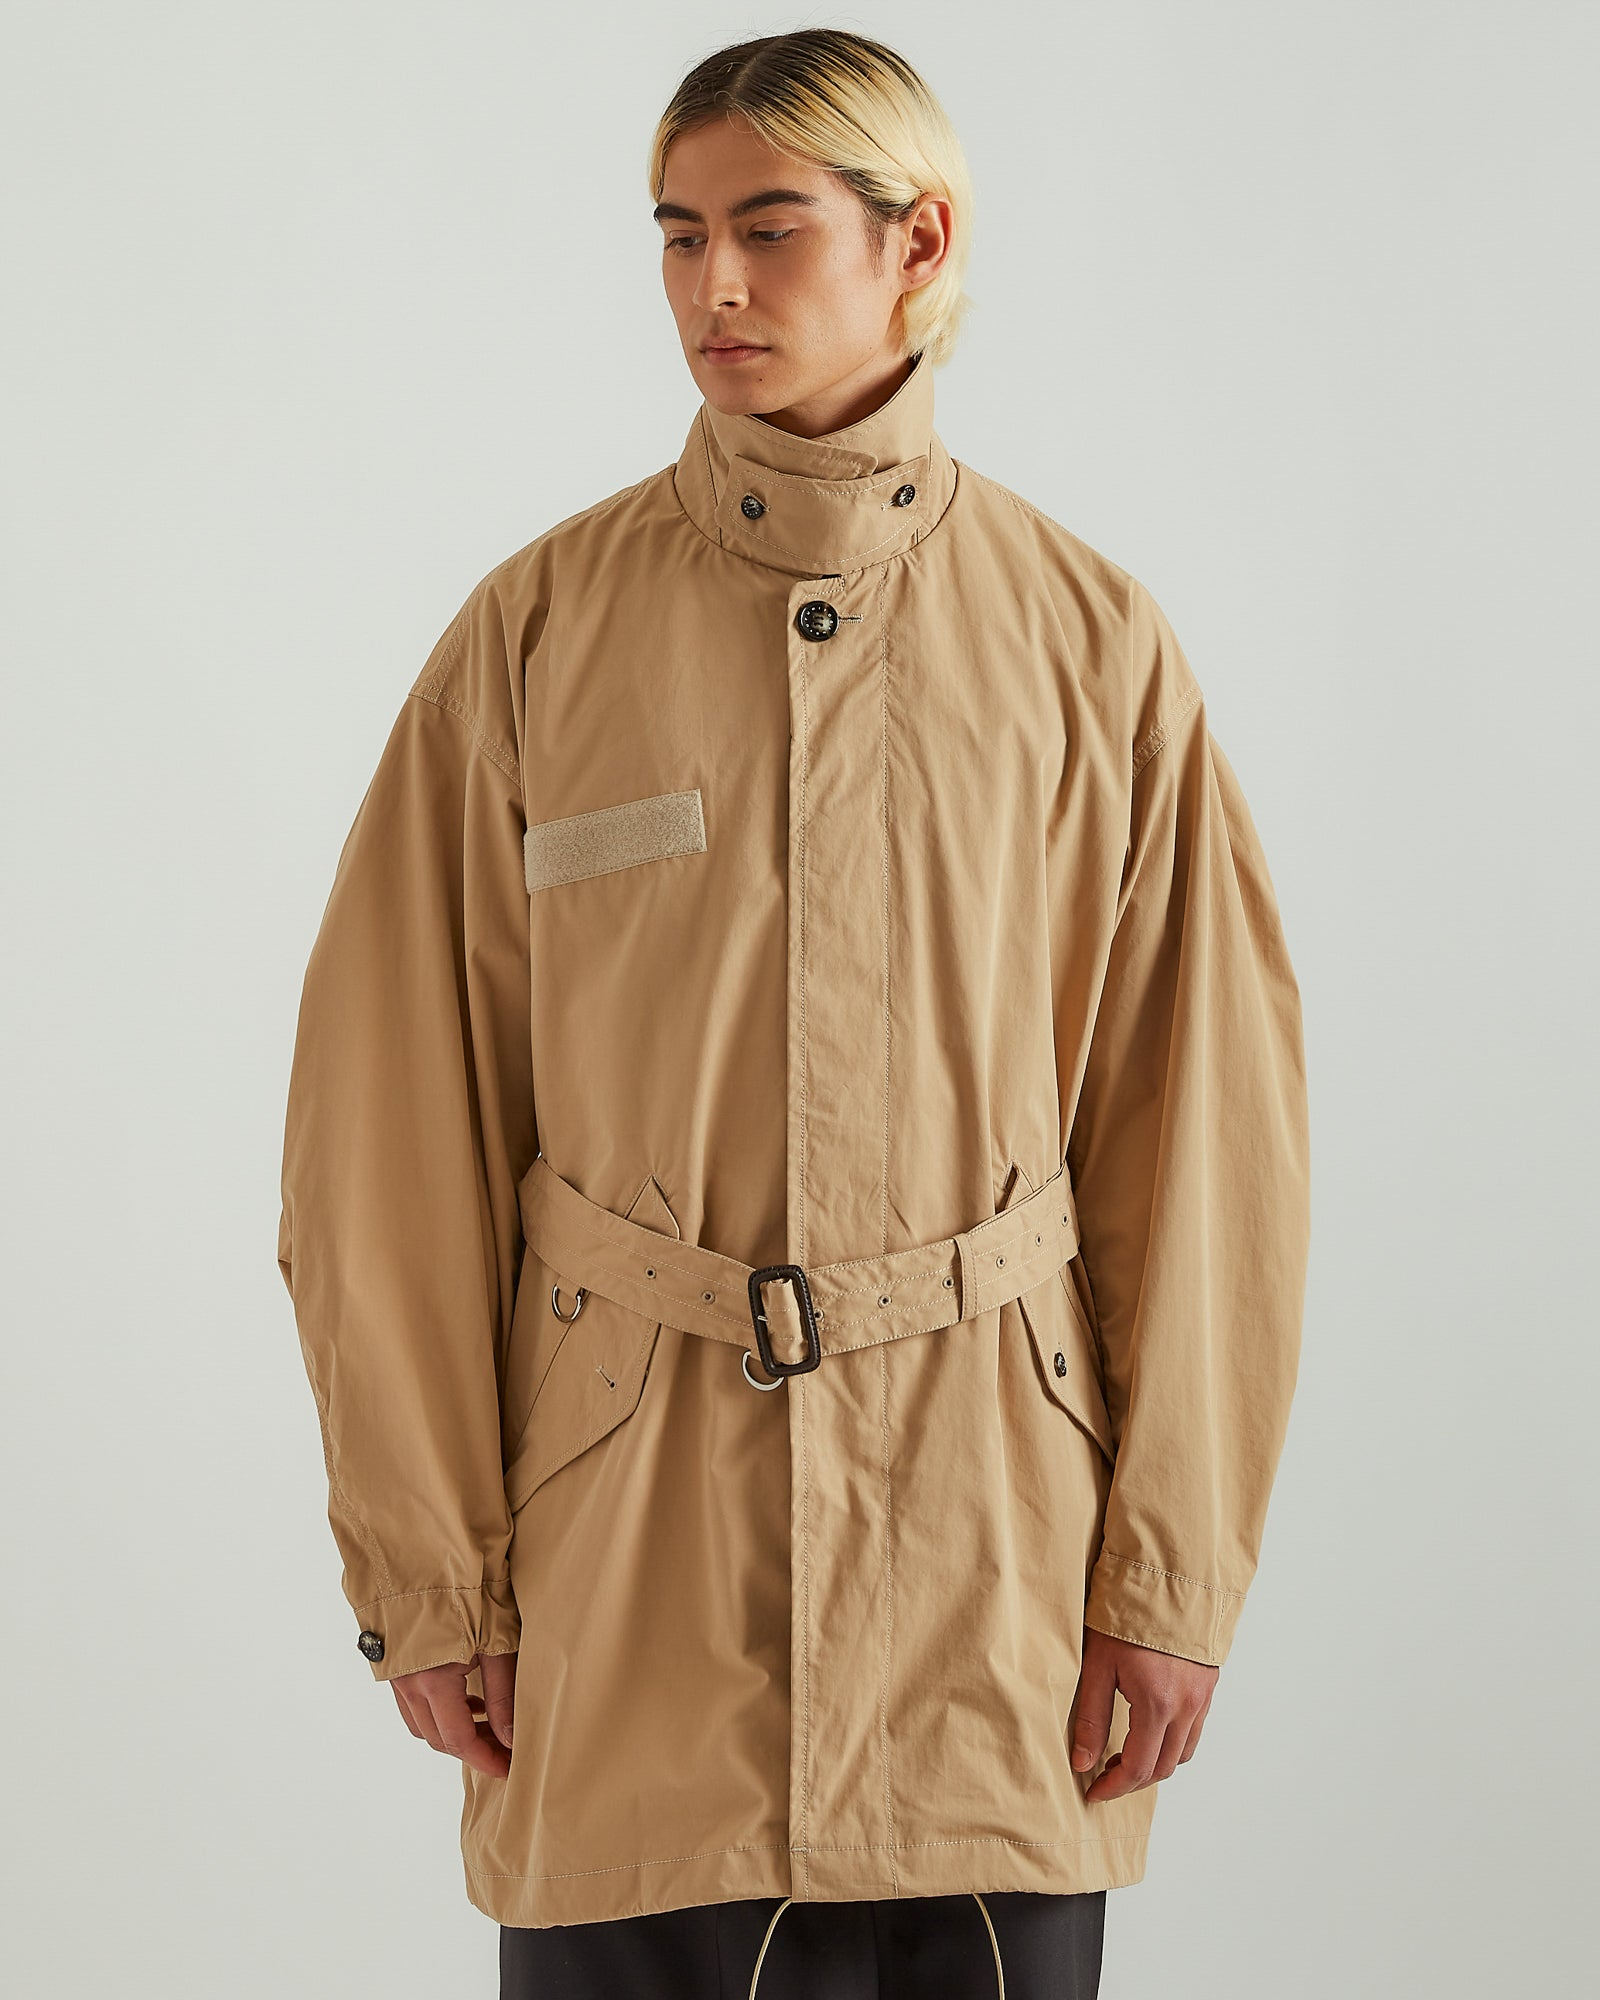 Mods Collar Coat in Beige